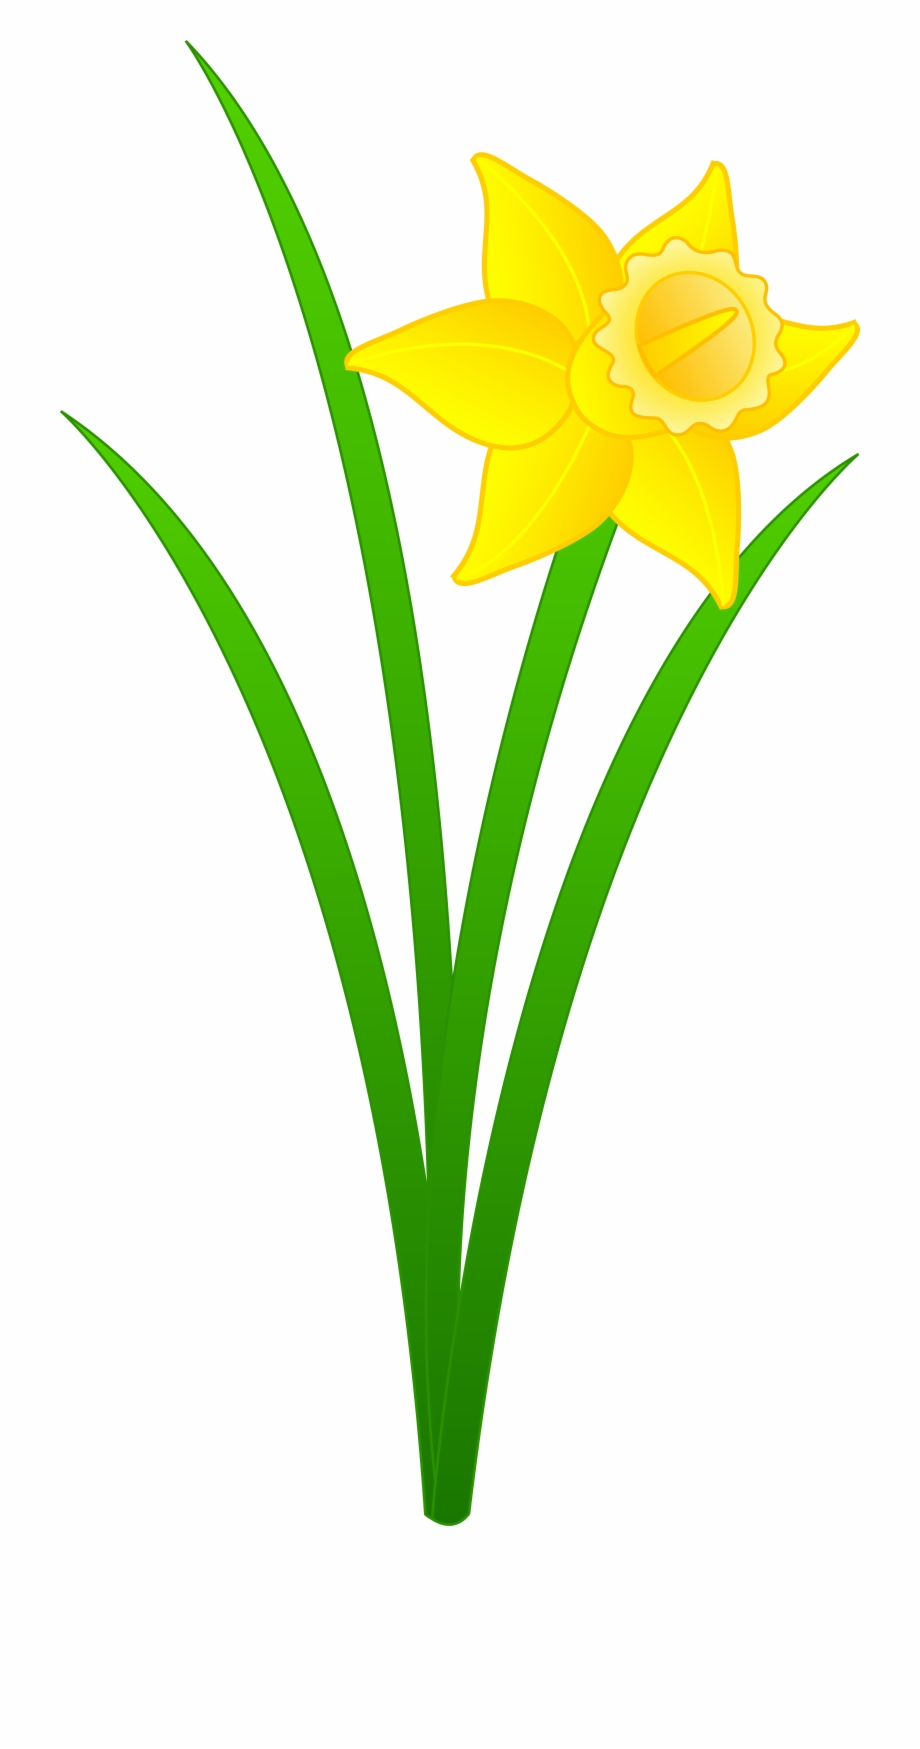 Daffodils clipart clipart library library Daffodil - Daffodil Clipart Free PNG Images & Clipart Download ... clipart library library